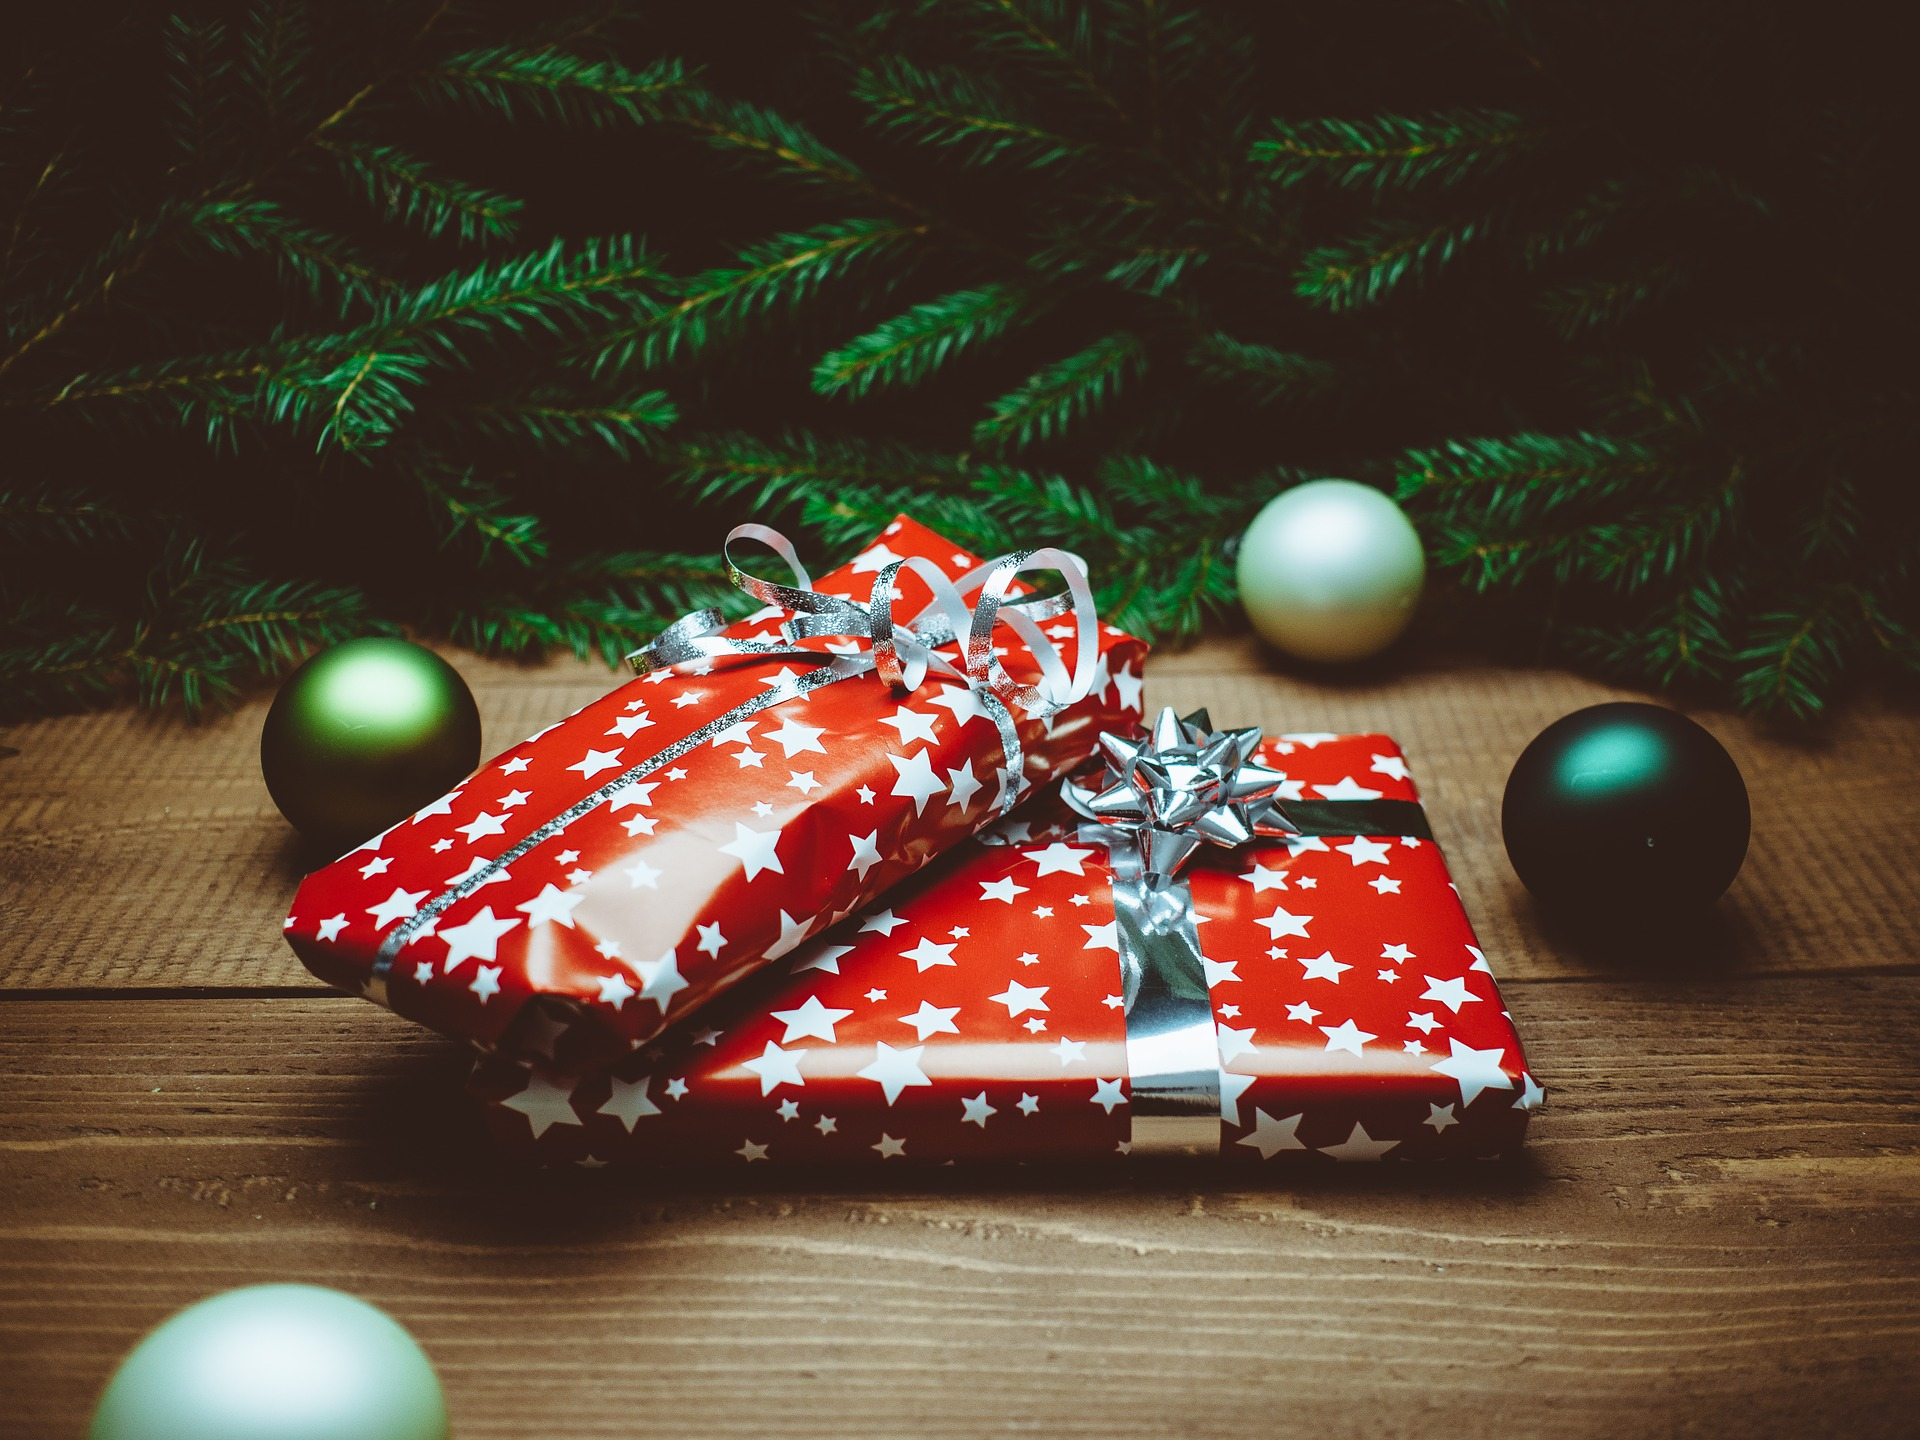 Christmas Spending.Uk Christmas Spending Habits Survey Results